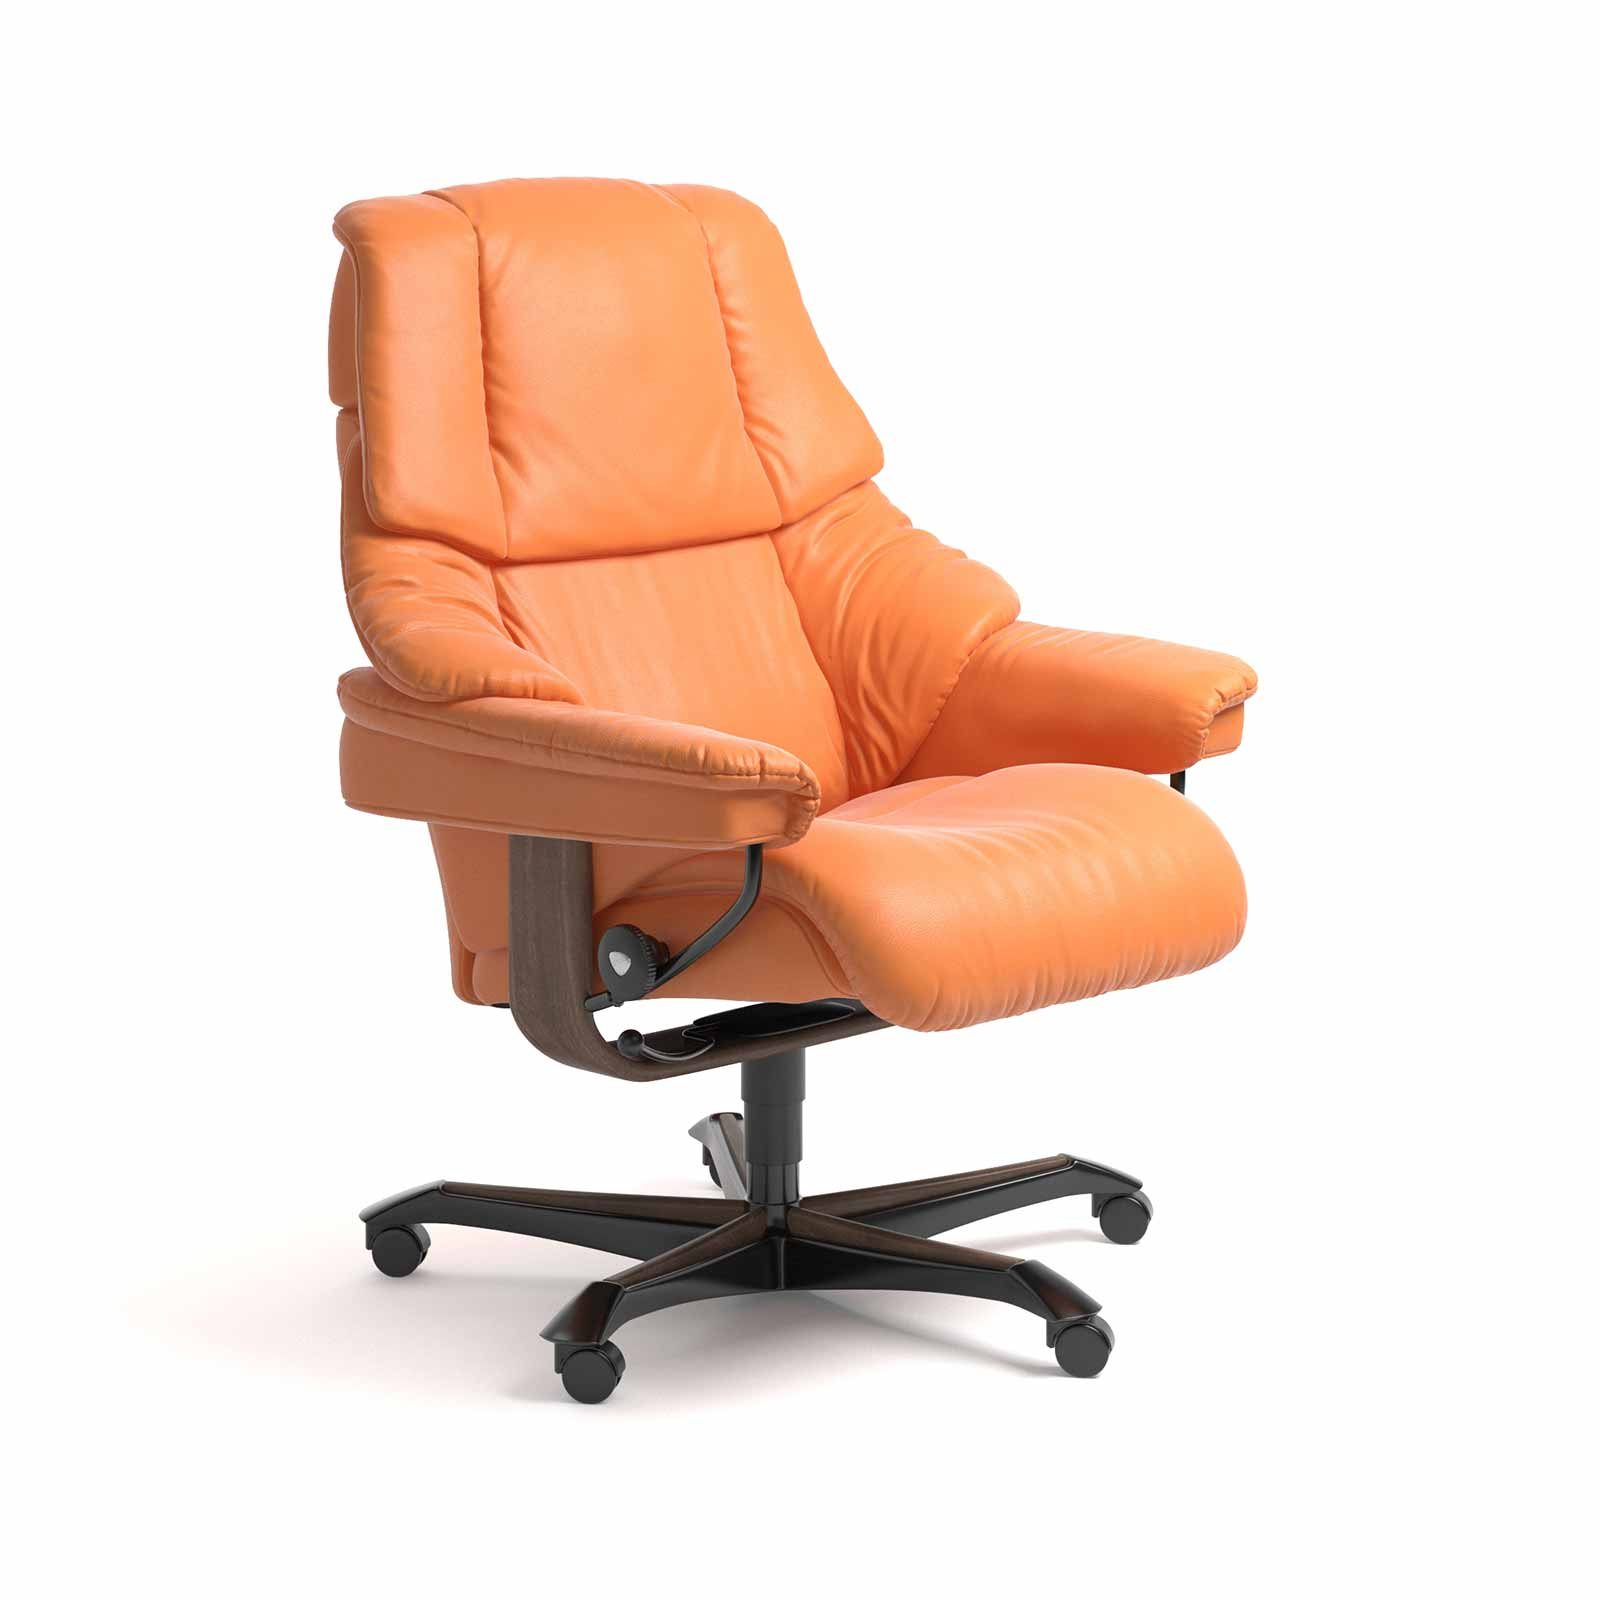 Stressless Bürostuhl Stressless Sessel Reno Home Office Paloma Apricot Orange